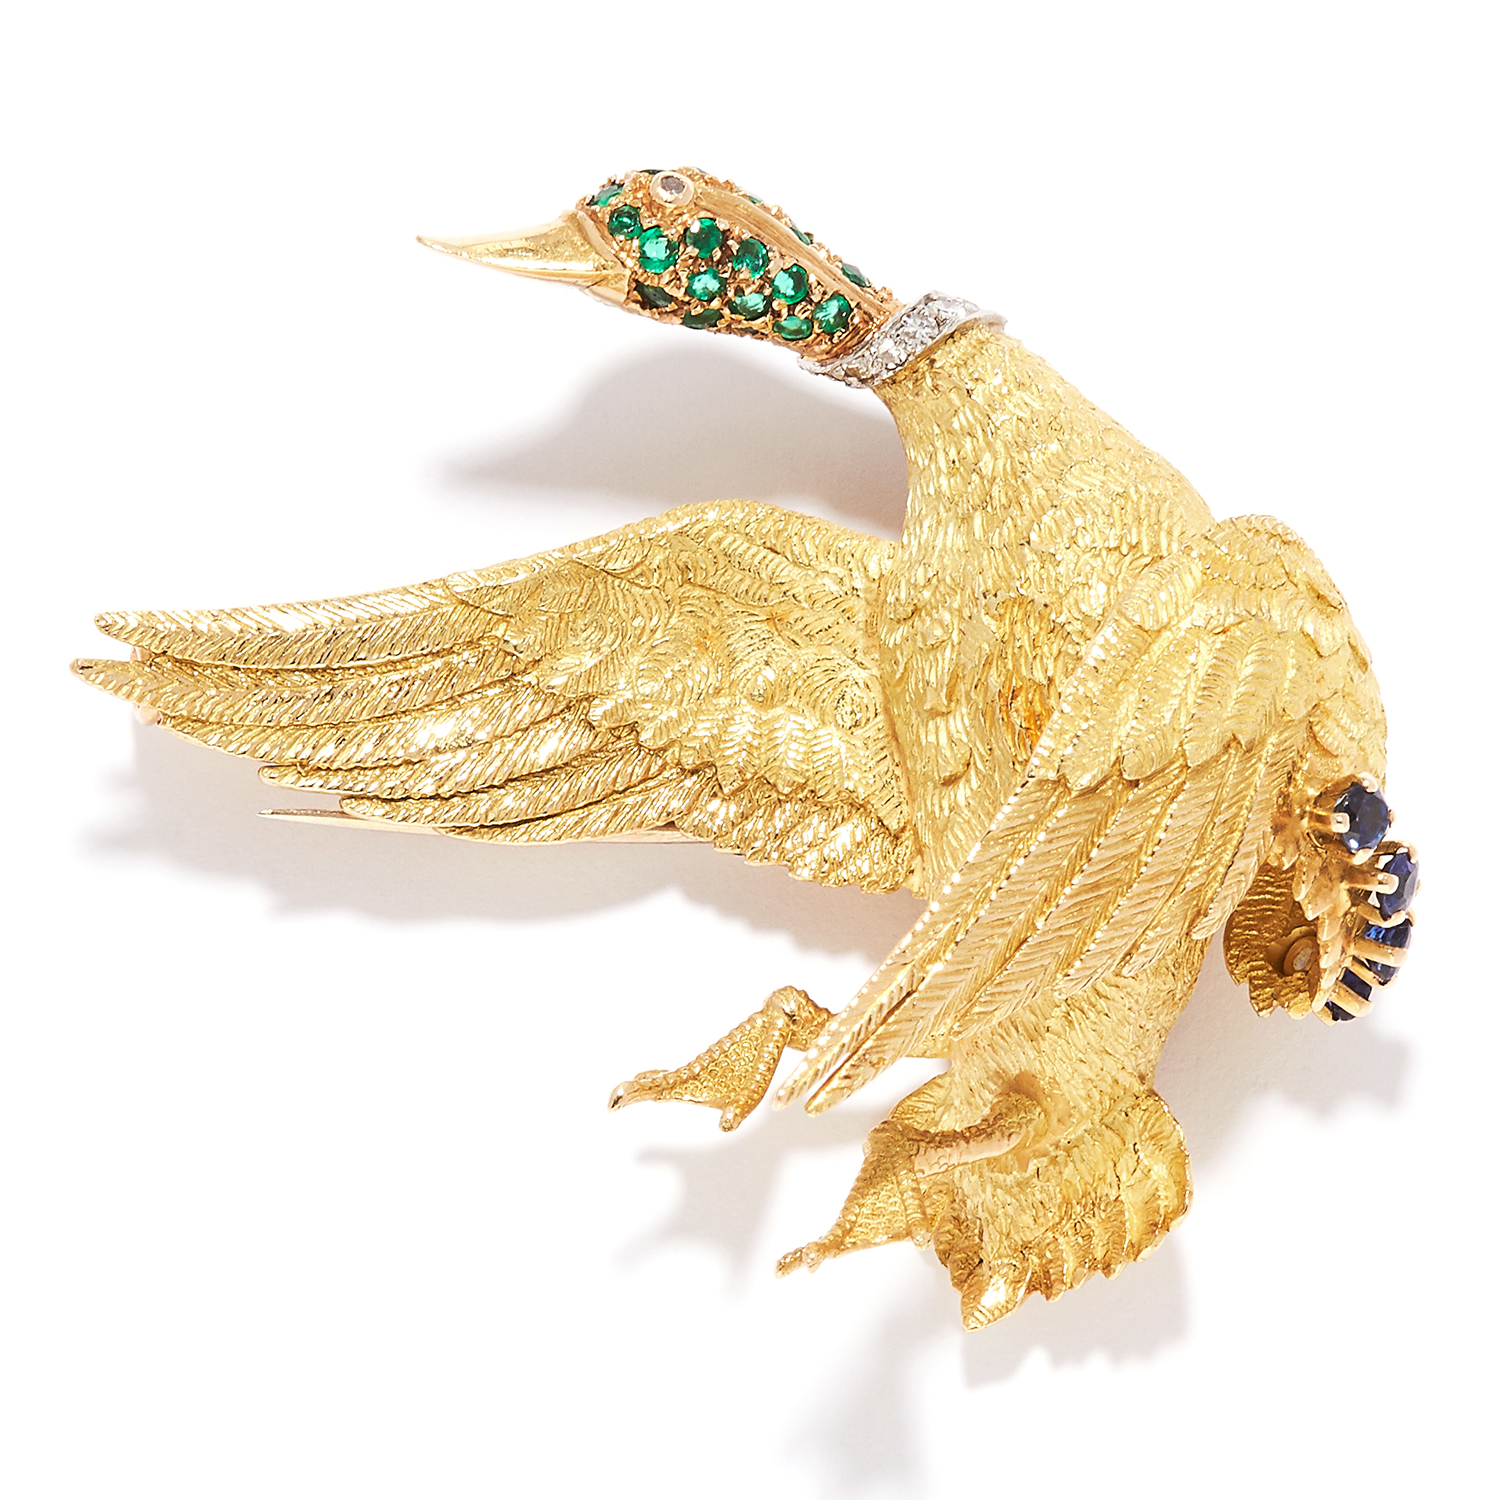 EMERALD, SAPPHIRE AND DIAMOND DUCK BROOCH, GEORGES LENFENT FOR HERMES in 18ct yellow gold, depicting